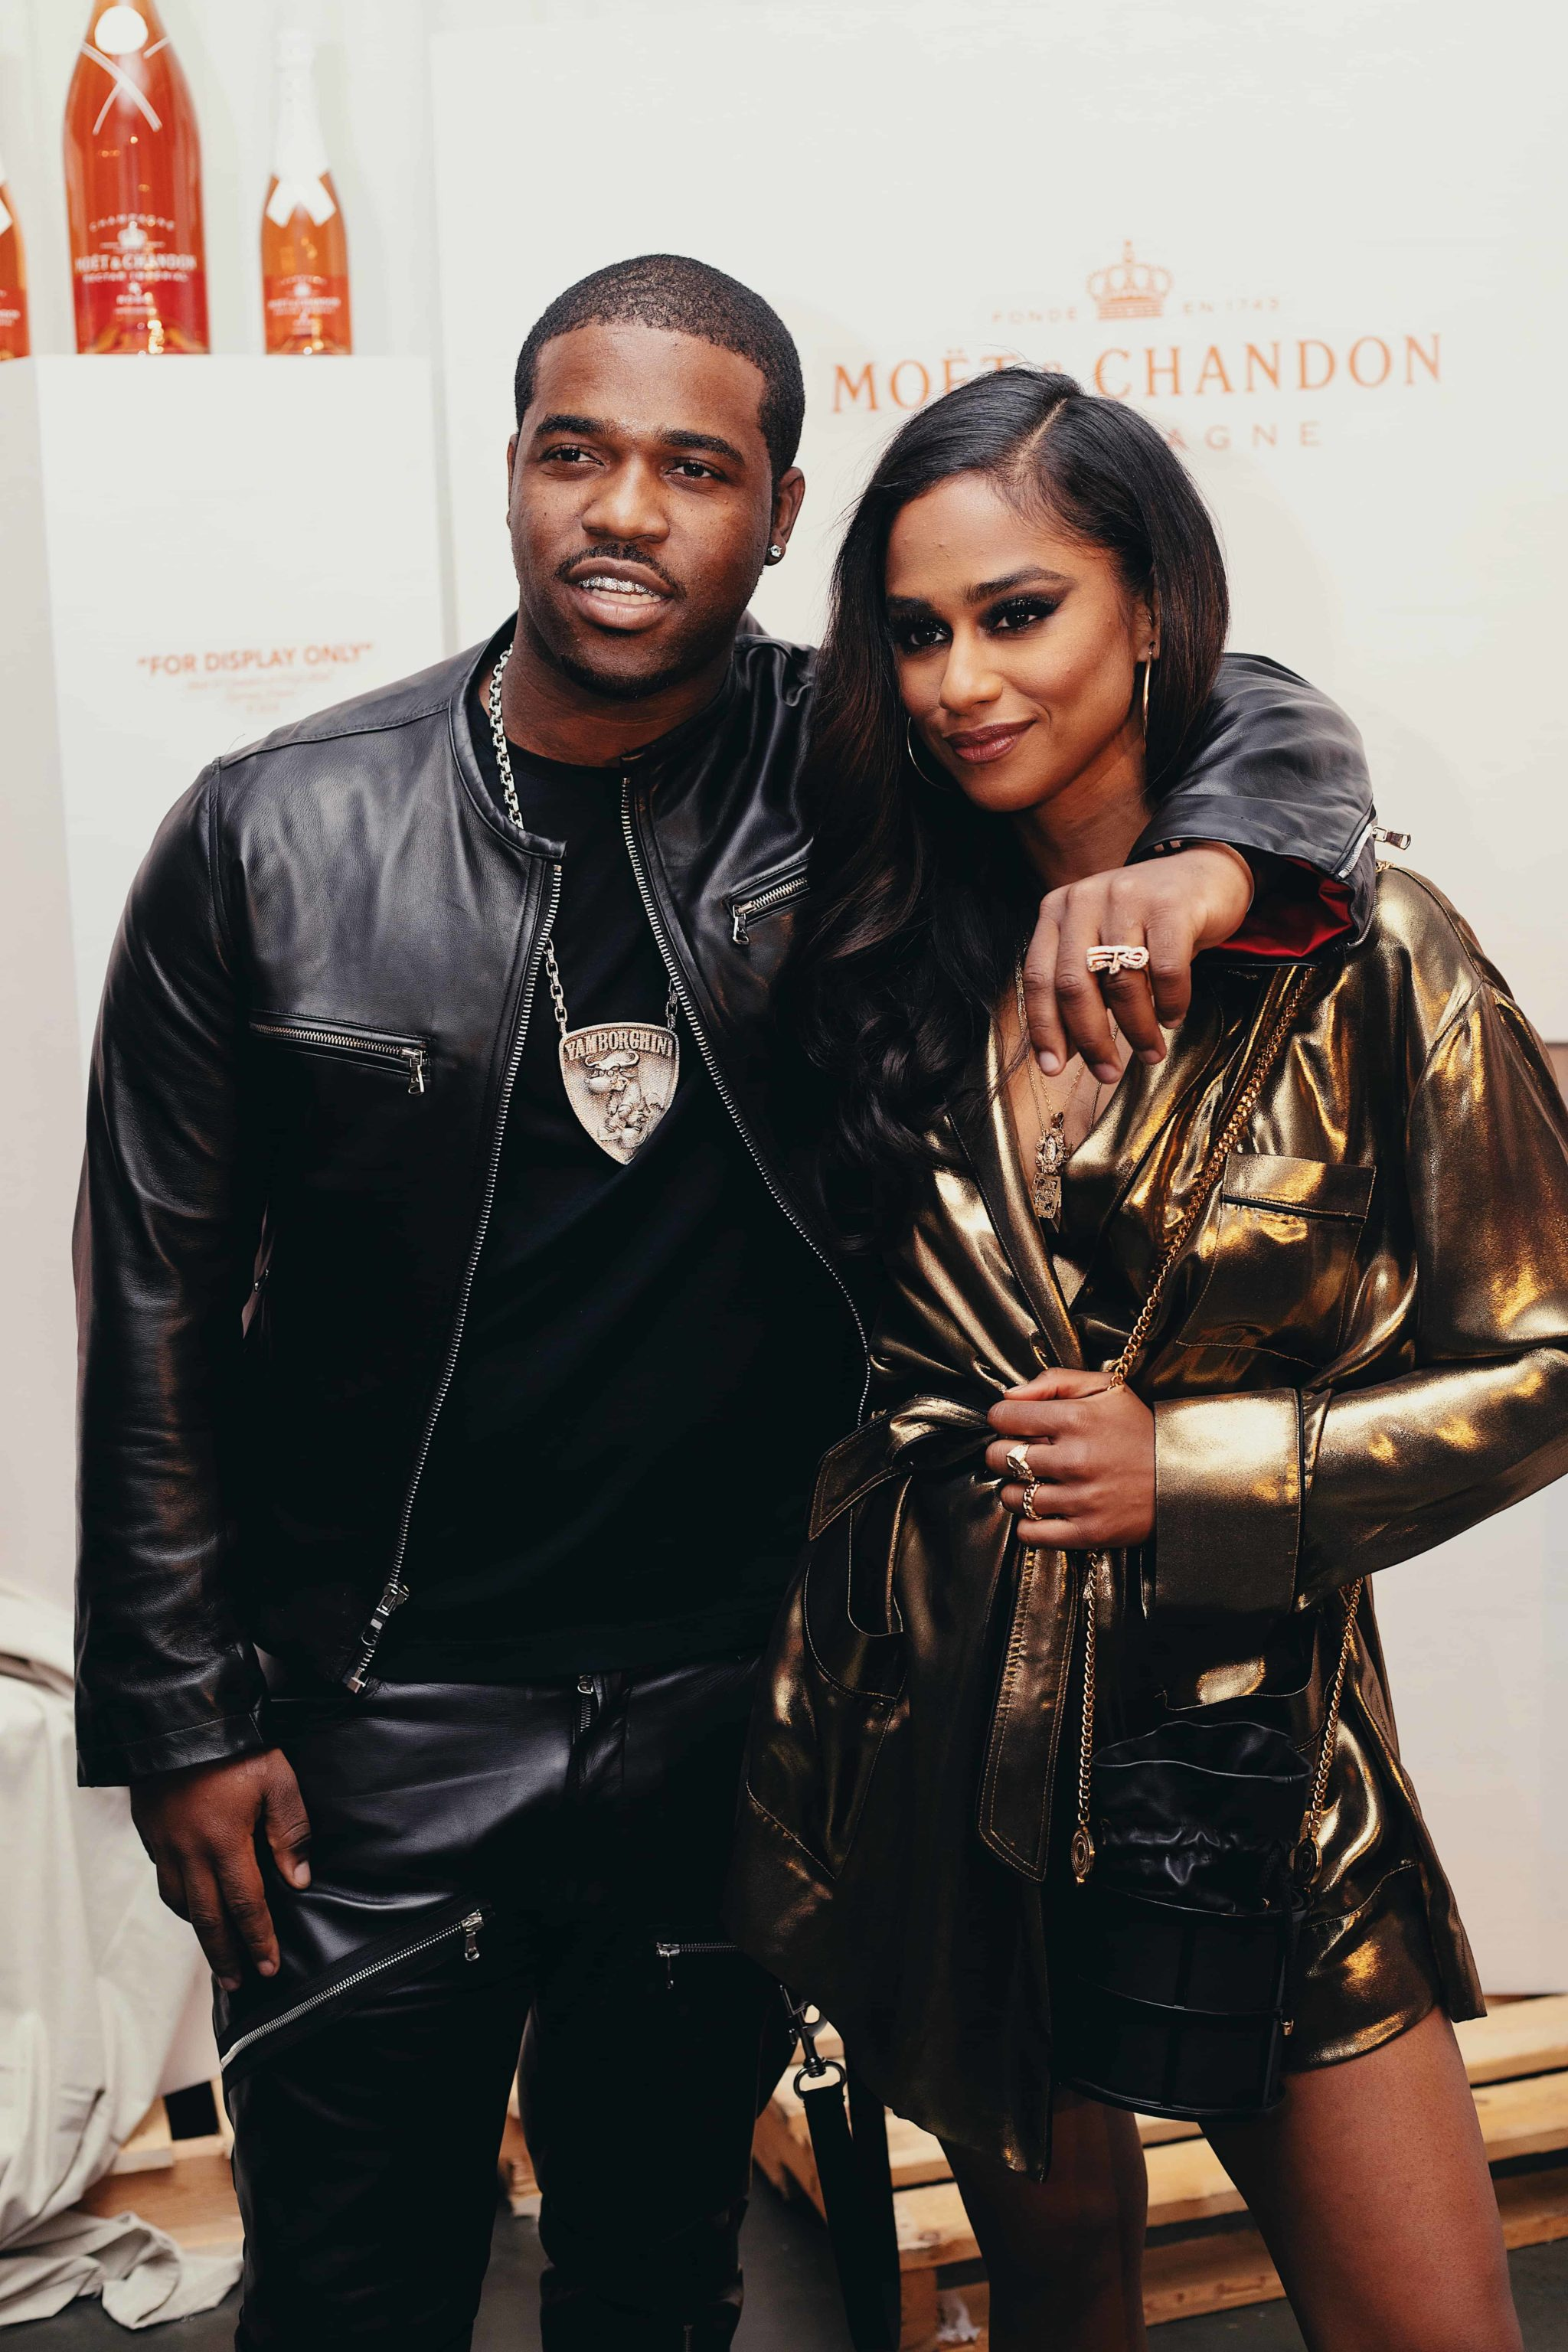 A$AP Ferg & Vashtie at cocktail hour for the launch of Moët & Chandon Nectar Impérial Rosé c/o Virgil Abloh™ in New York City (Photo Credit: Kenneth L. Dixon)